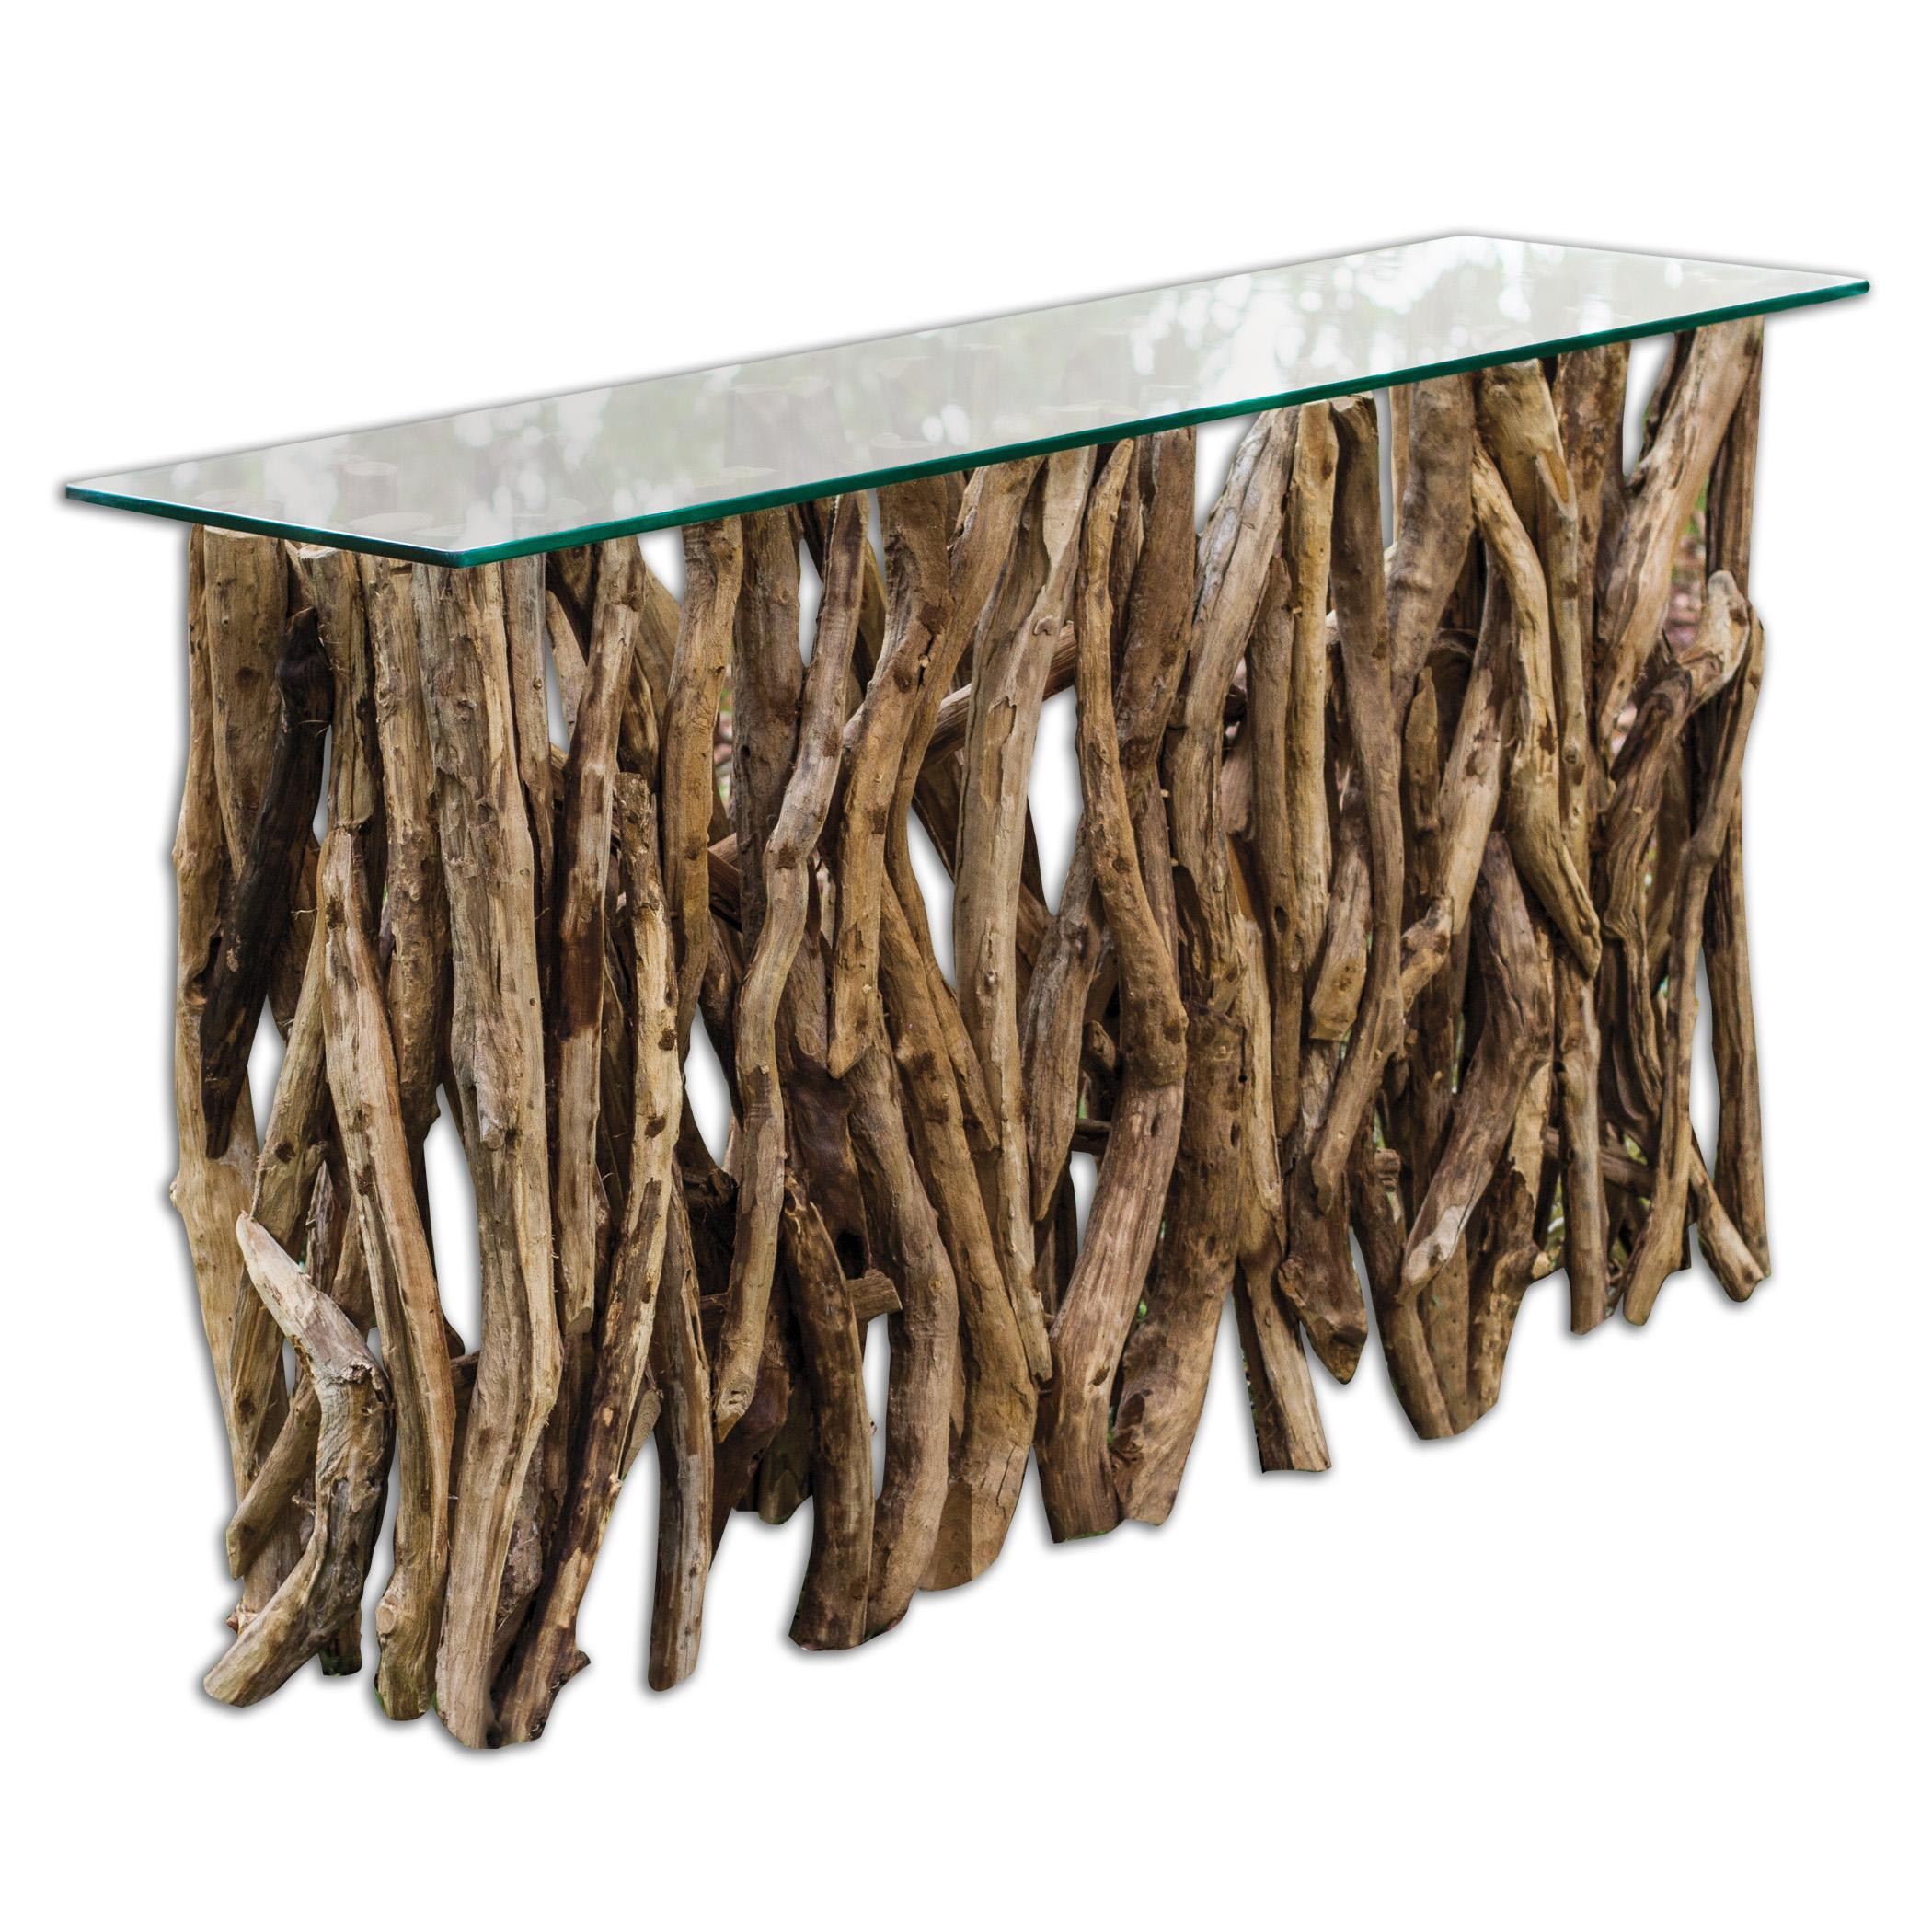 Accent Furniture - Occasional Tables Teak Wood Console by Uttermost at Upper Room Home Furnishings